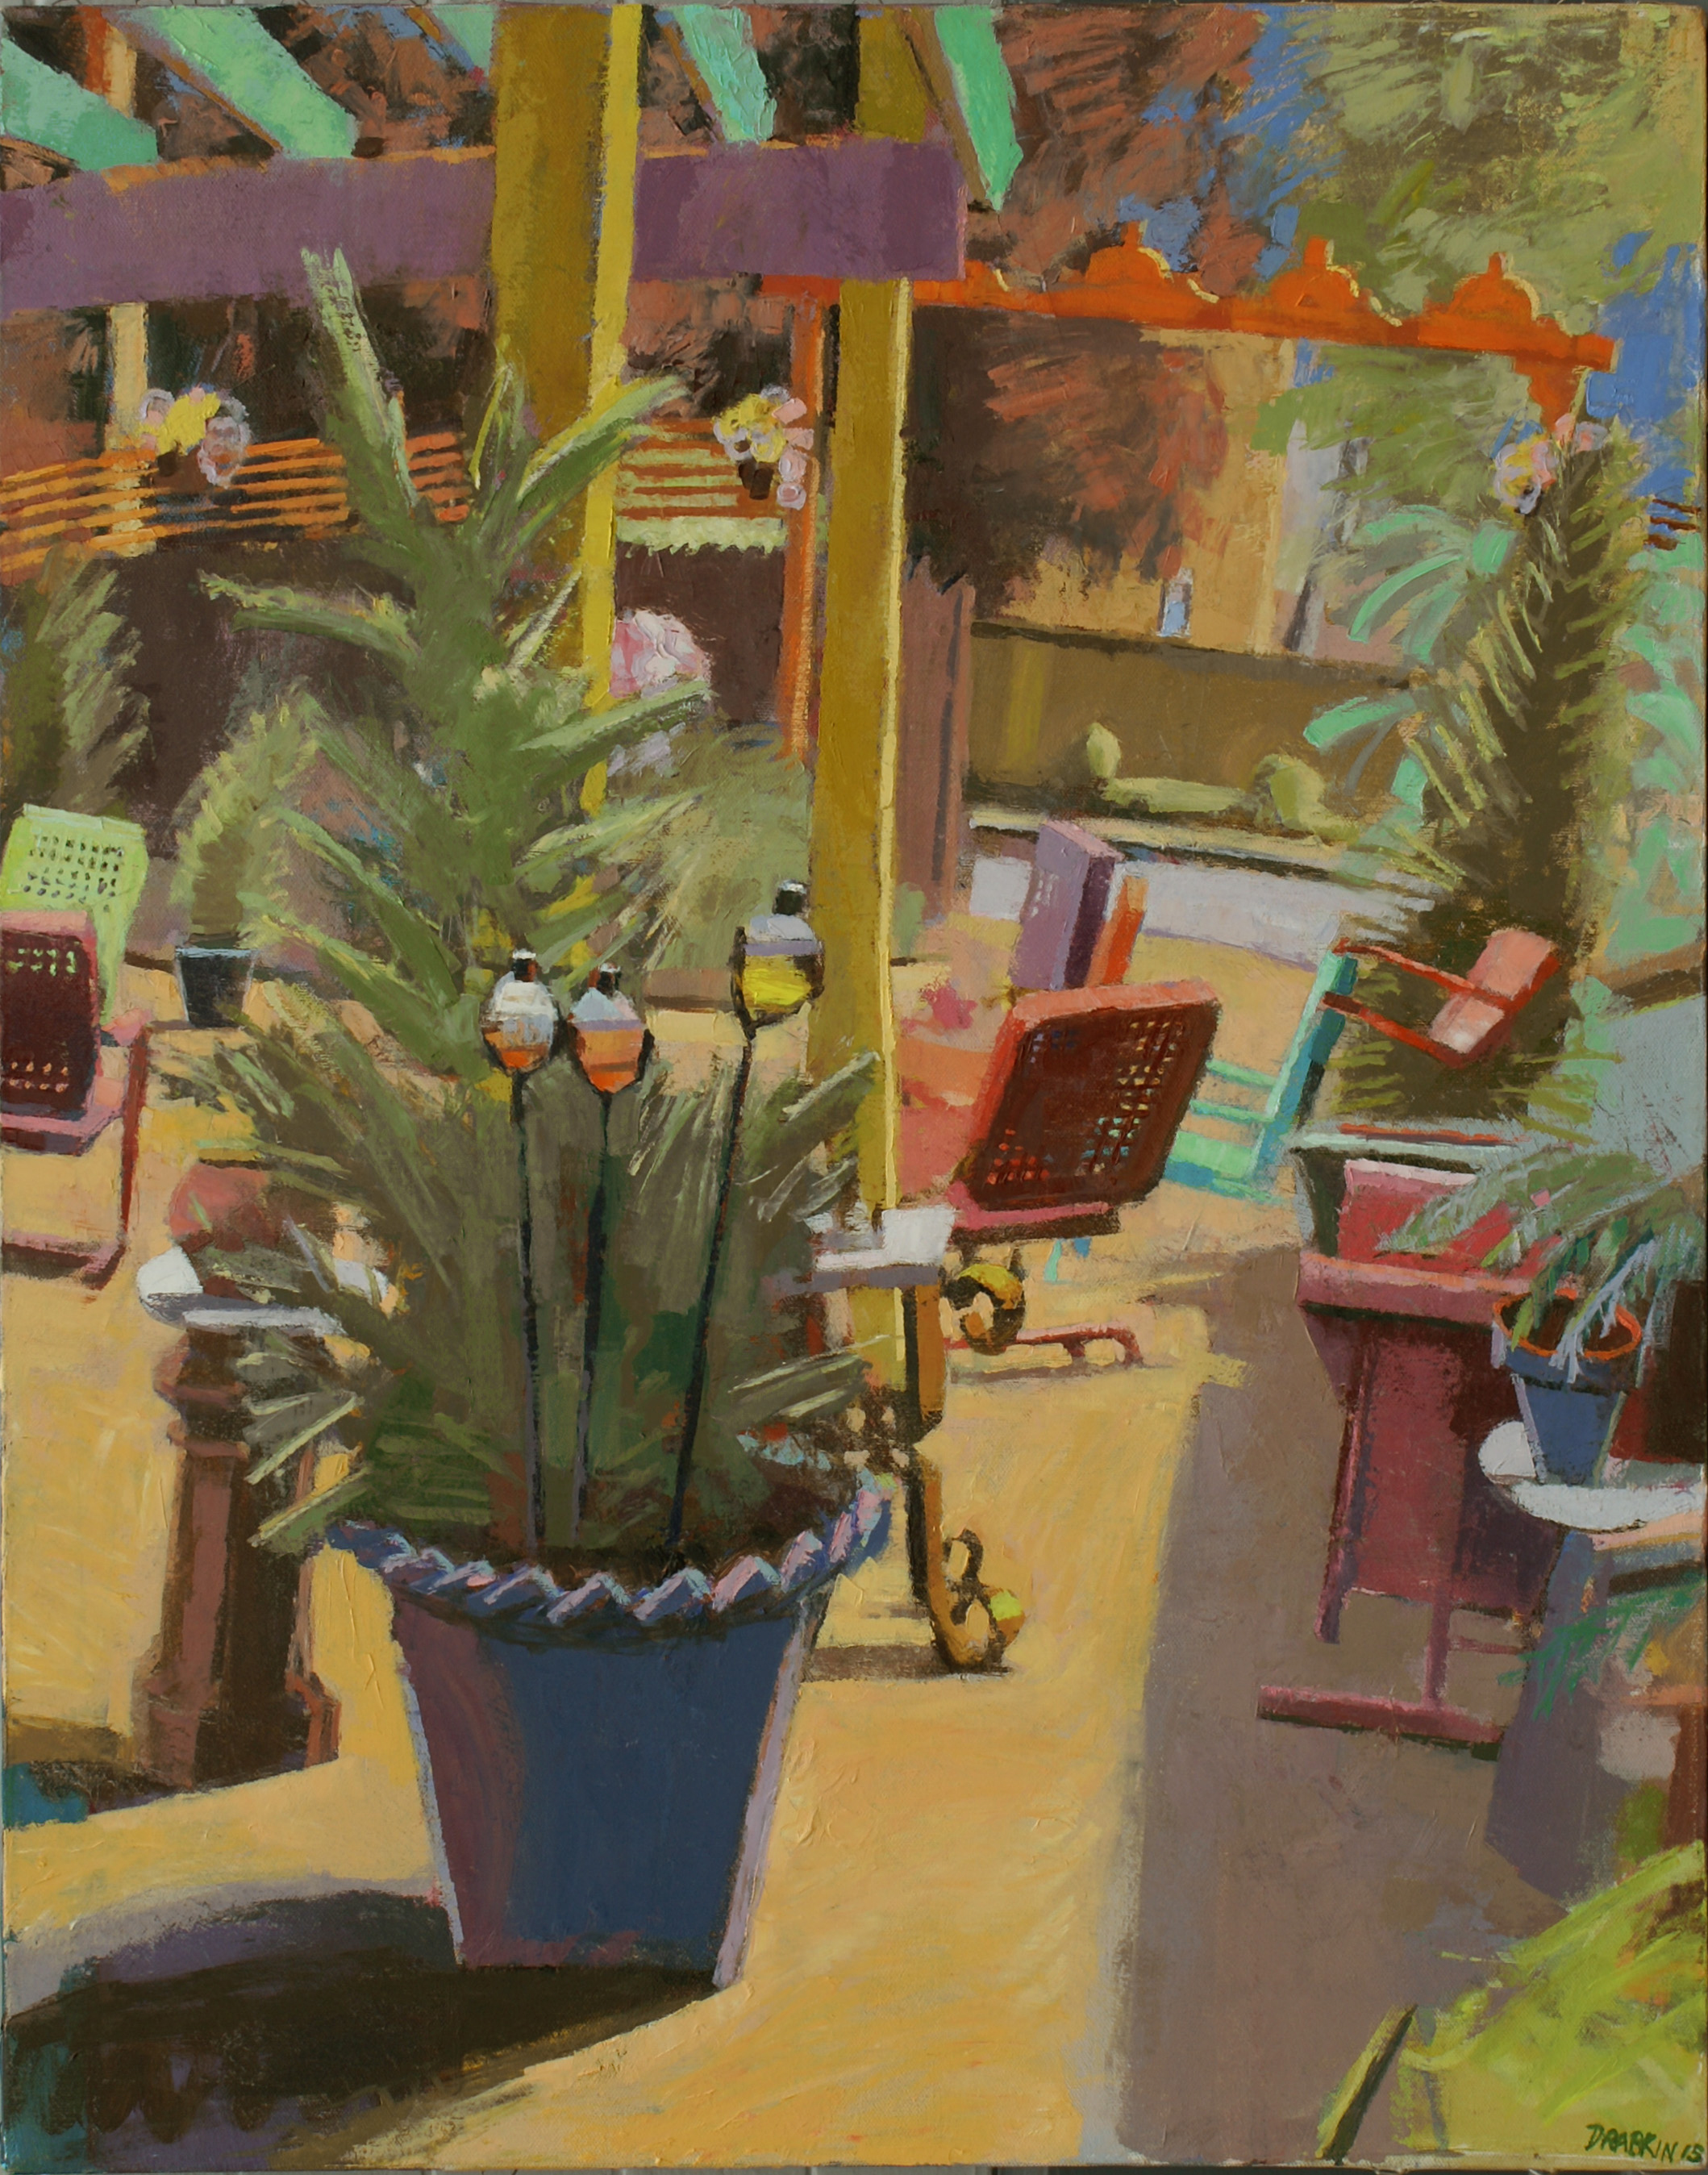 Painting of plant in the middle of outside patio with yellow ground and chairs in red, green, orange, blue